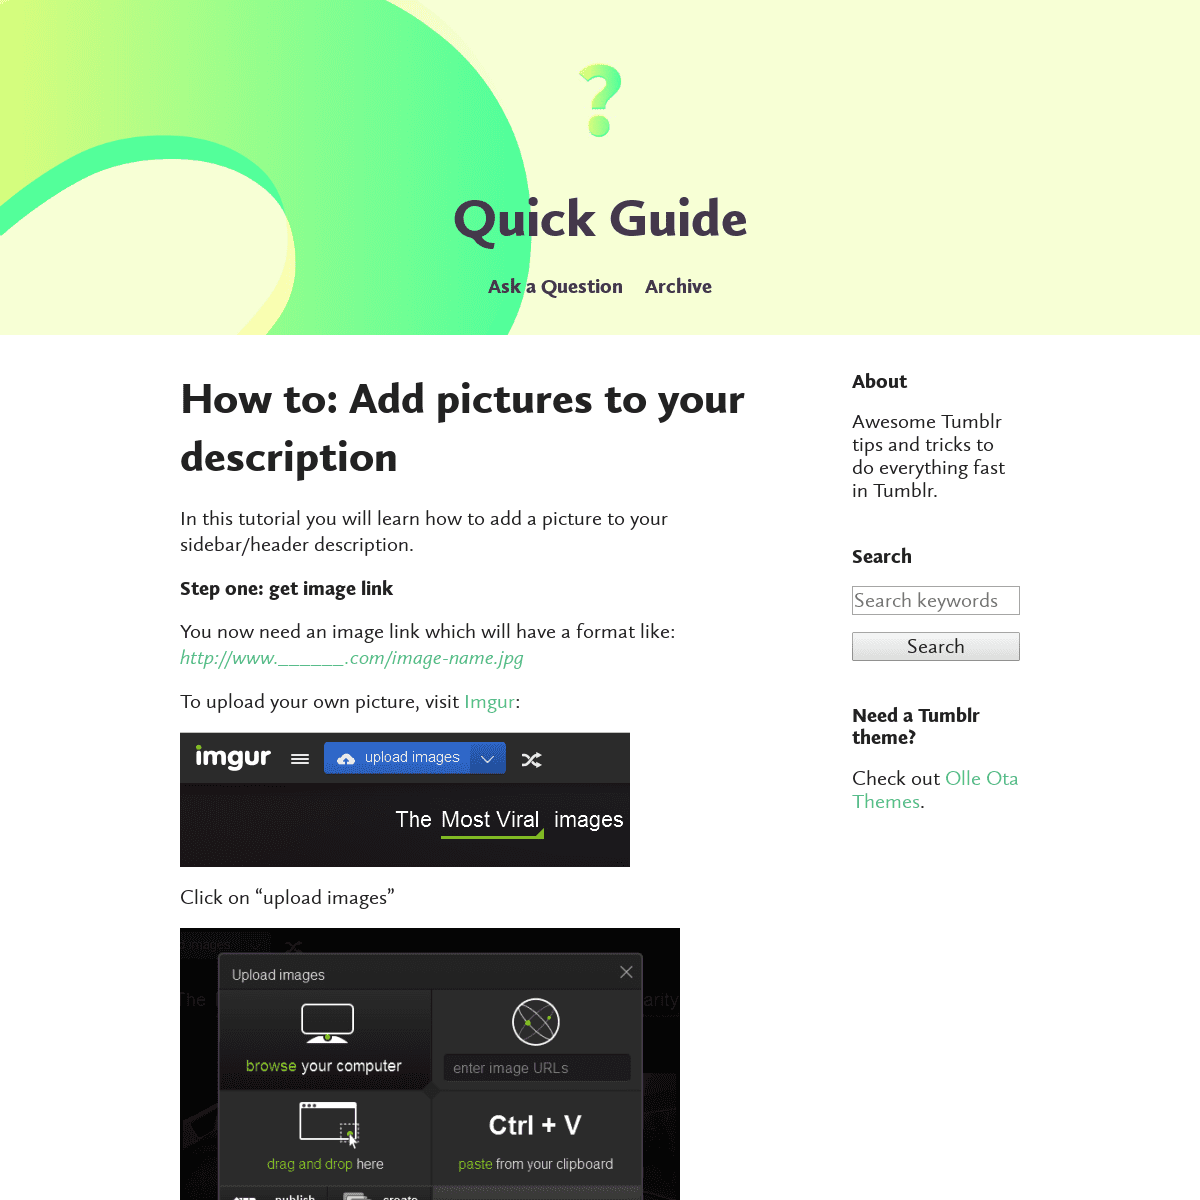 Quick Guide